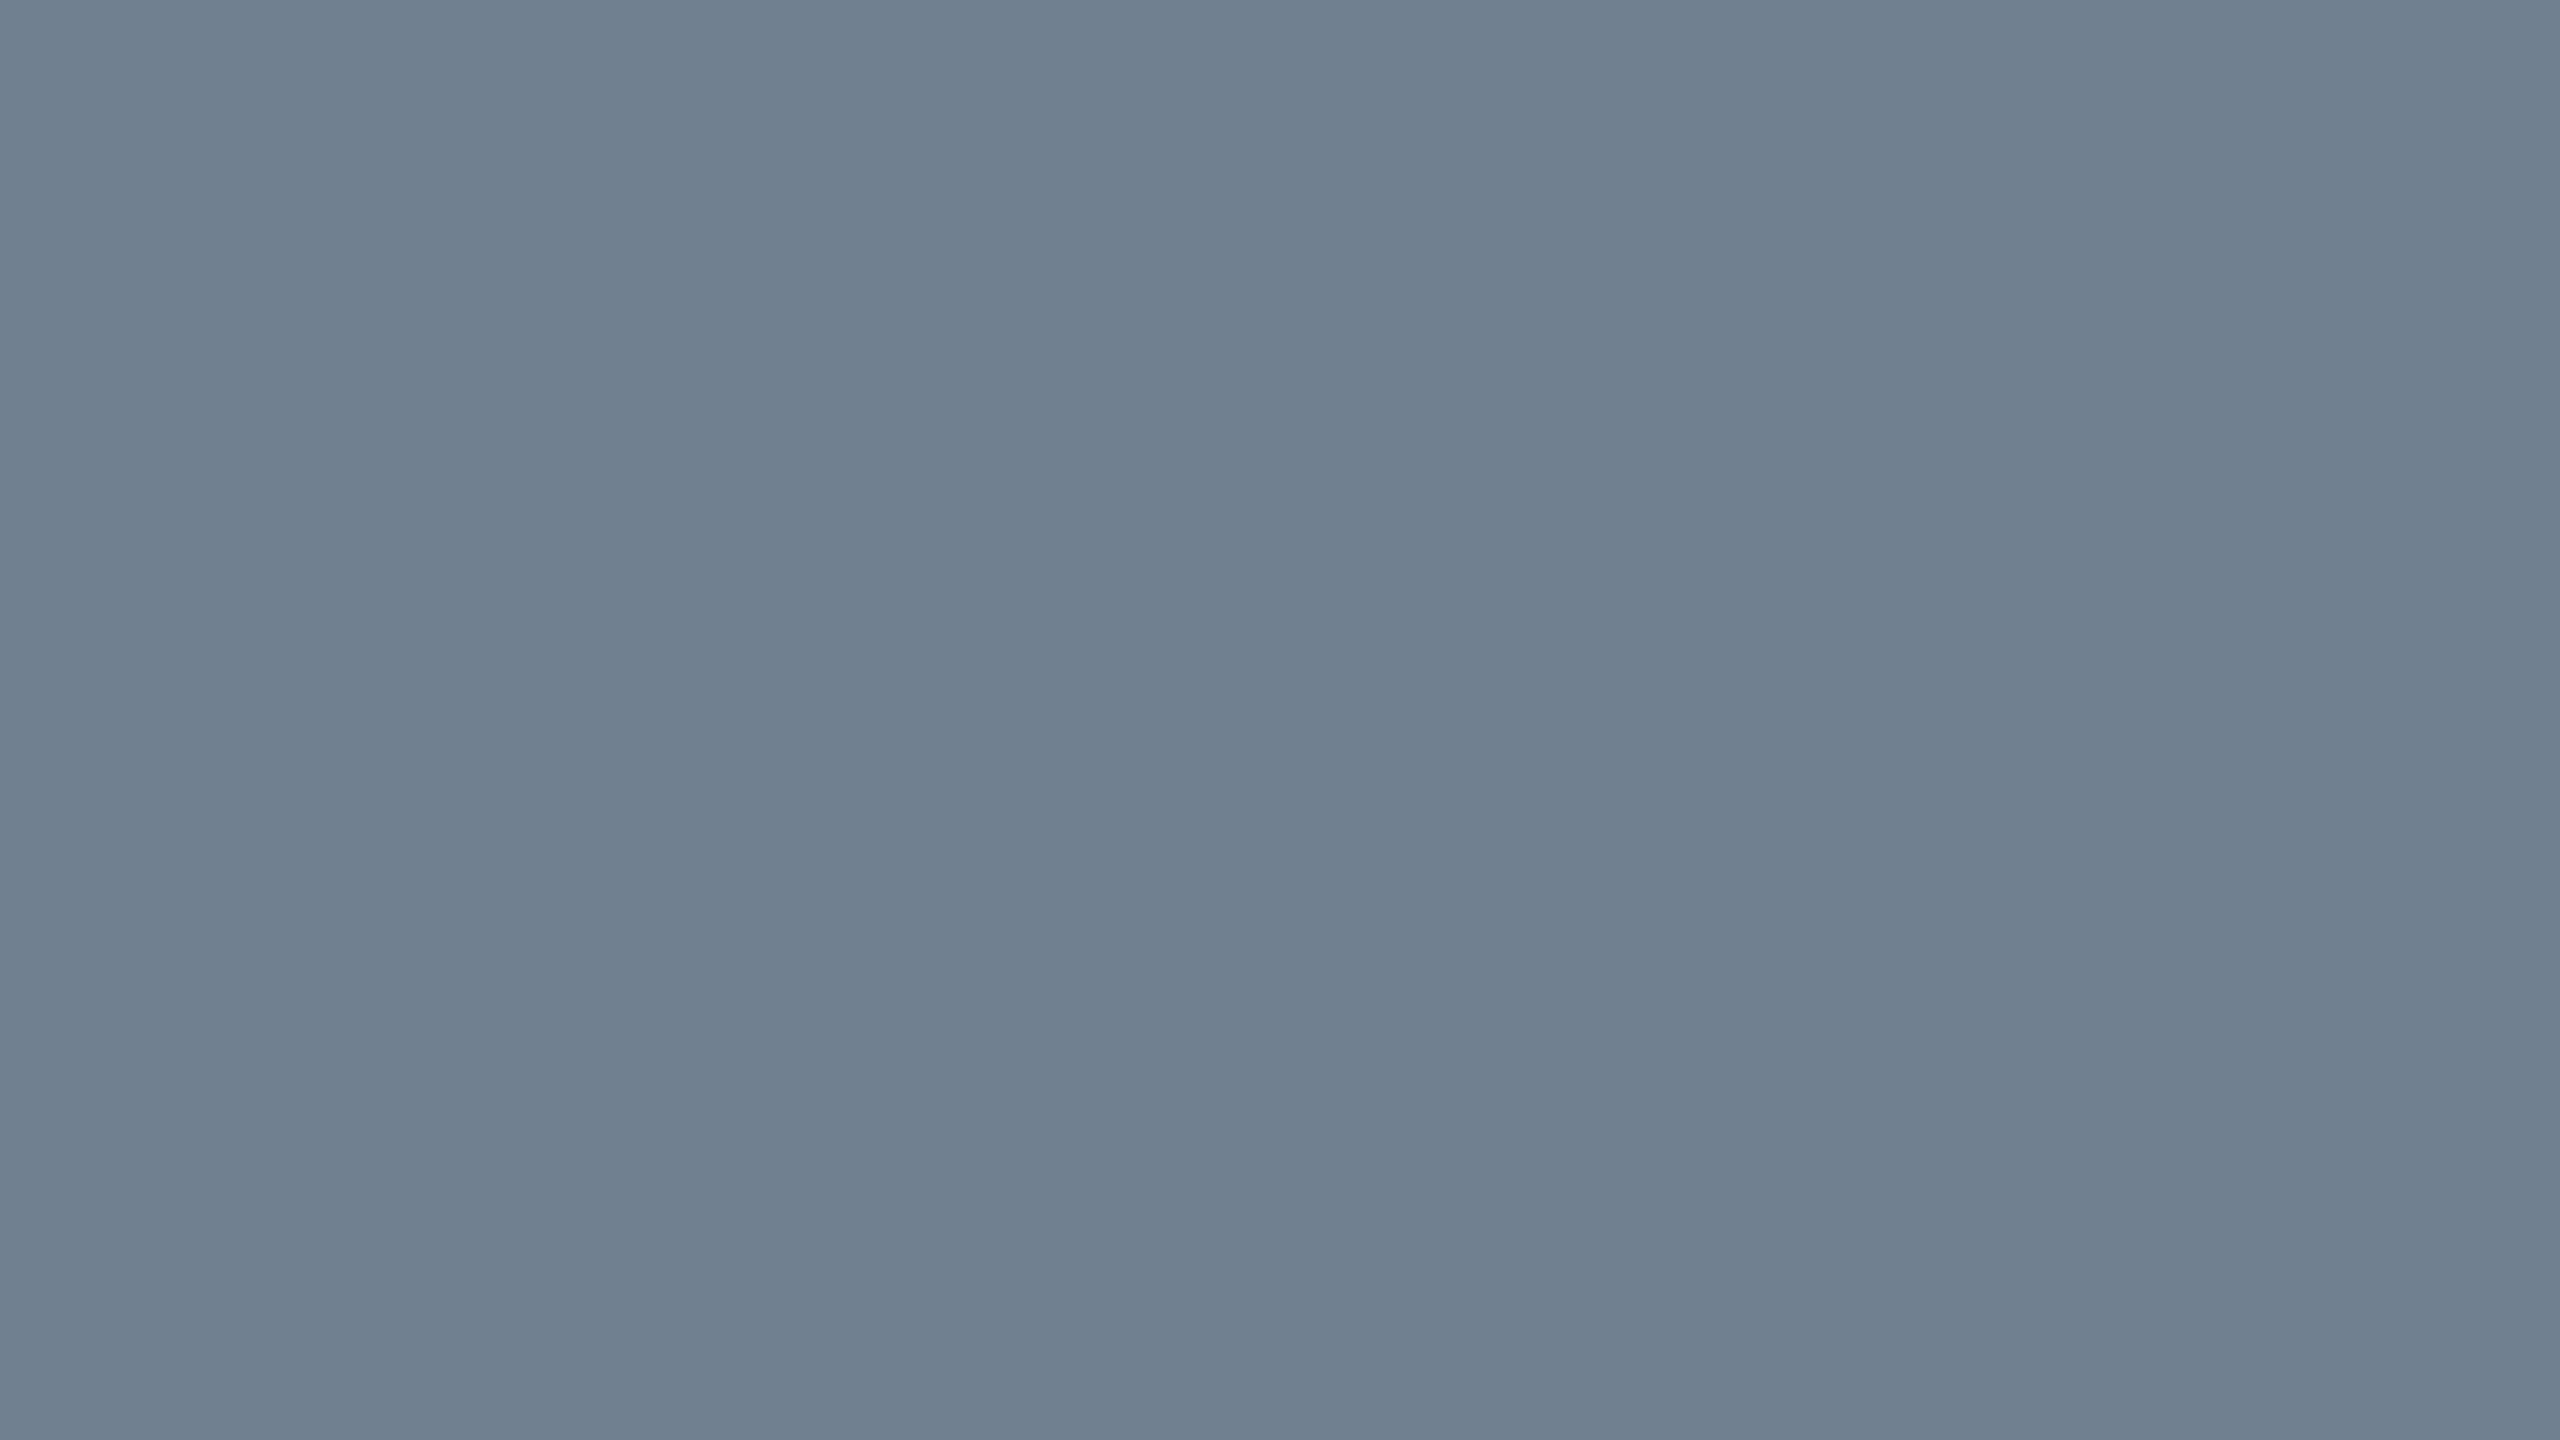 2560x1440 Slate Gray Solid Color Background